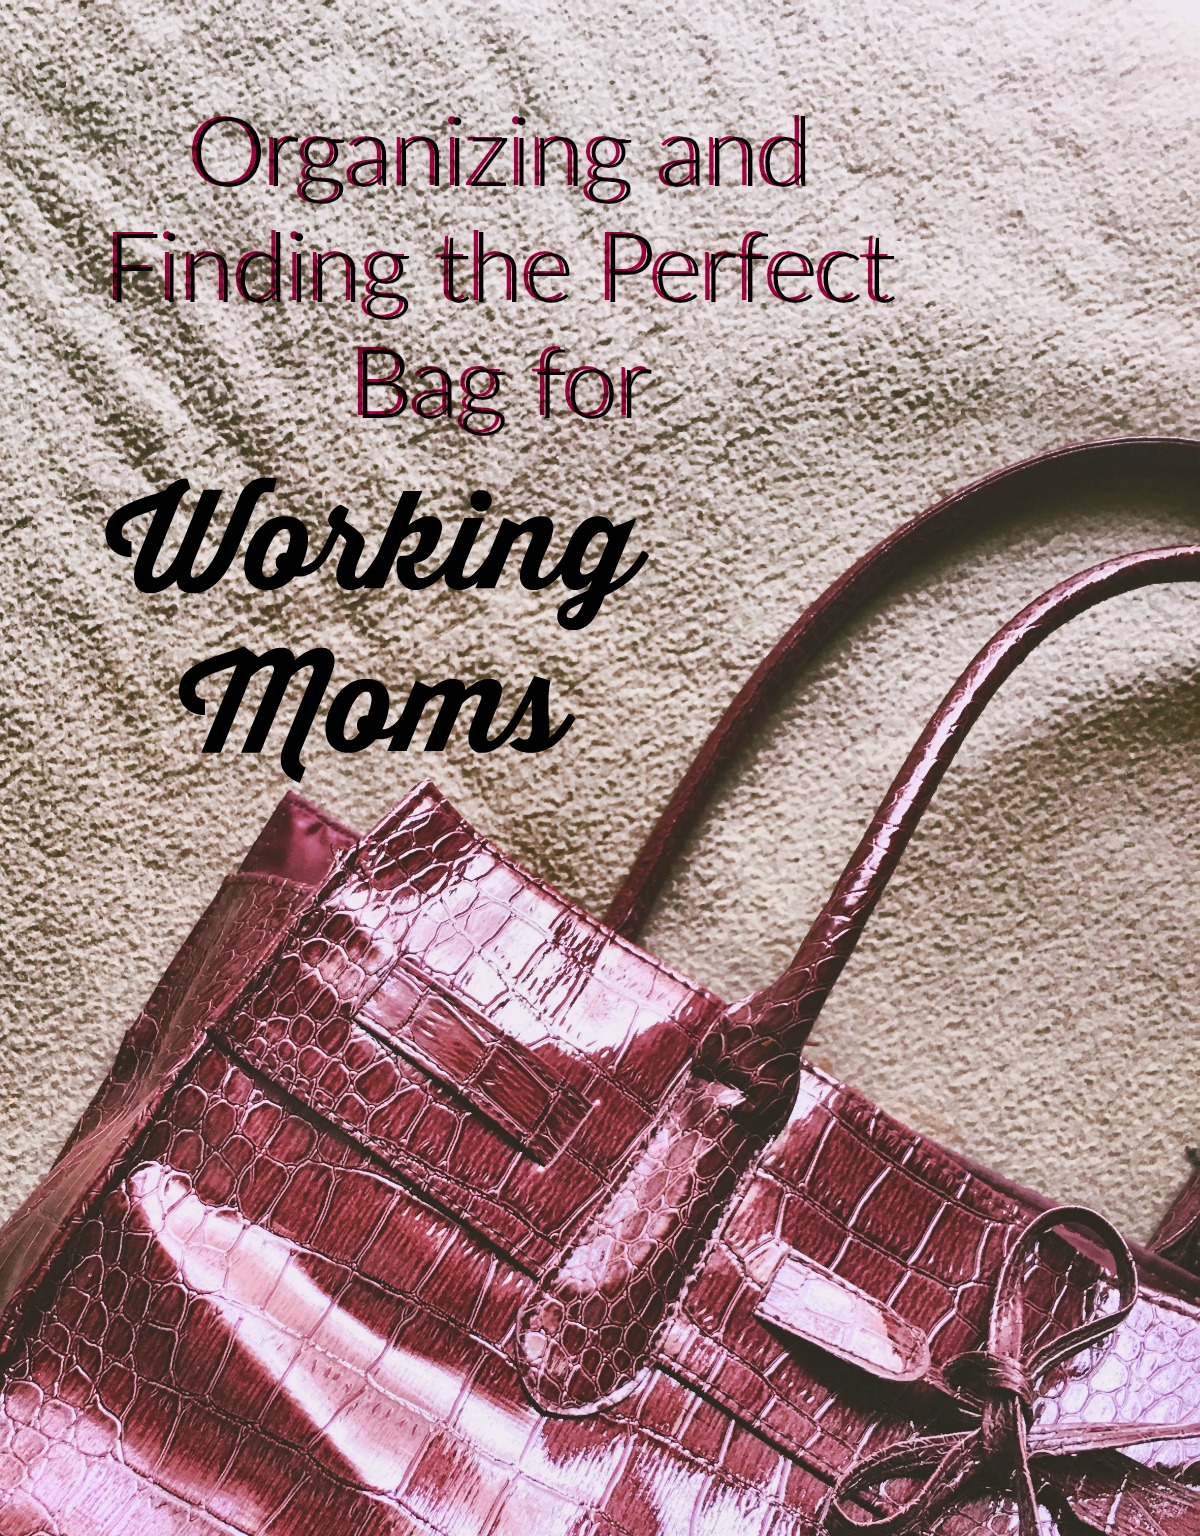 A perfect handbag can be a working mom's secret weapon. Here's how to find and organize your bag to help you juggle it all!